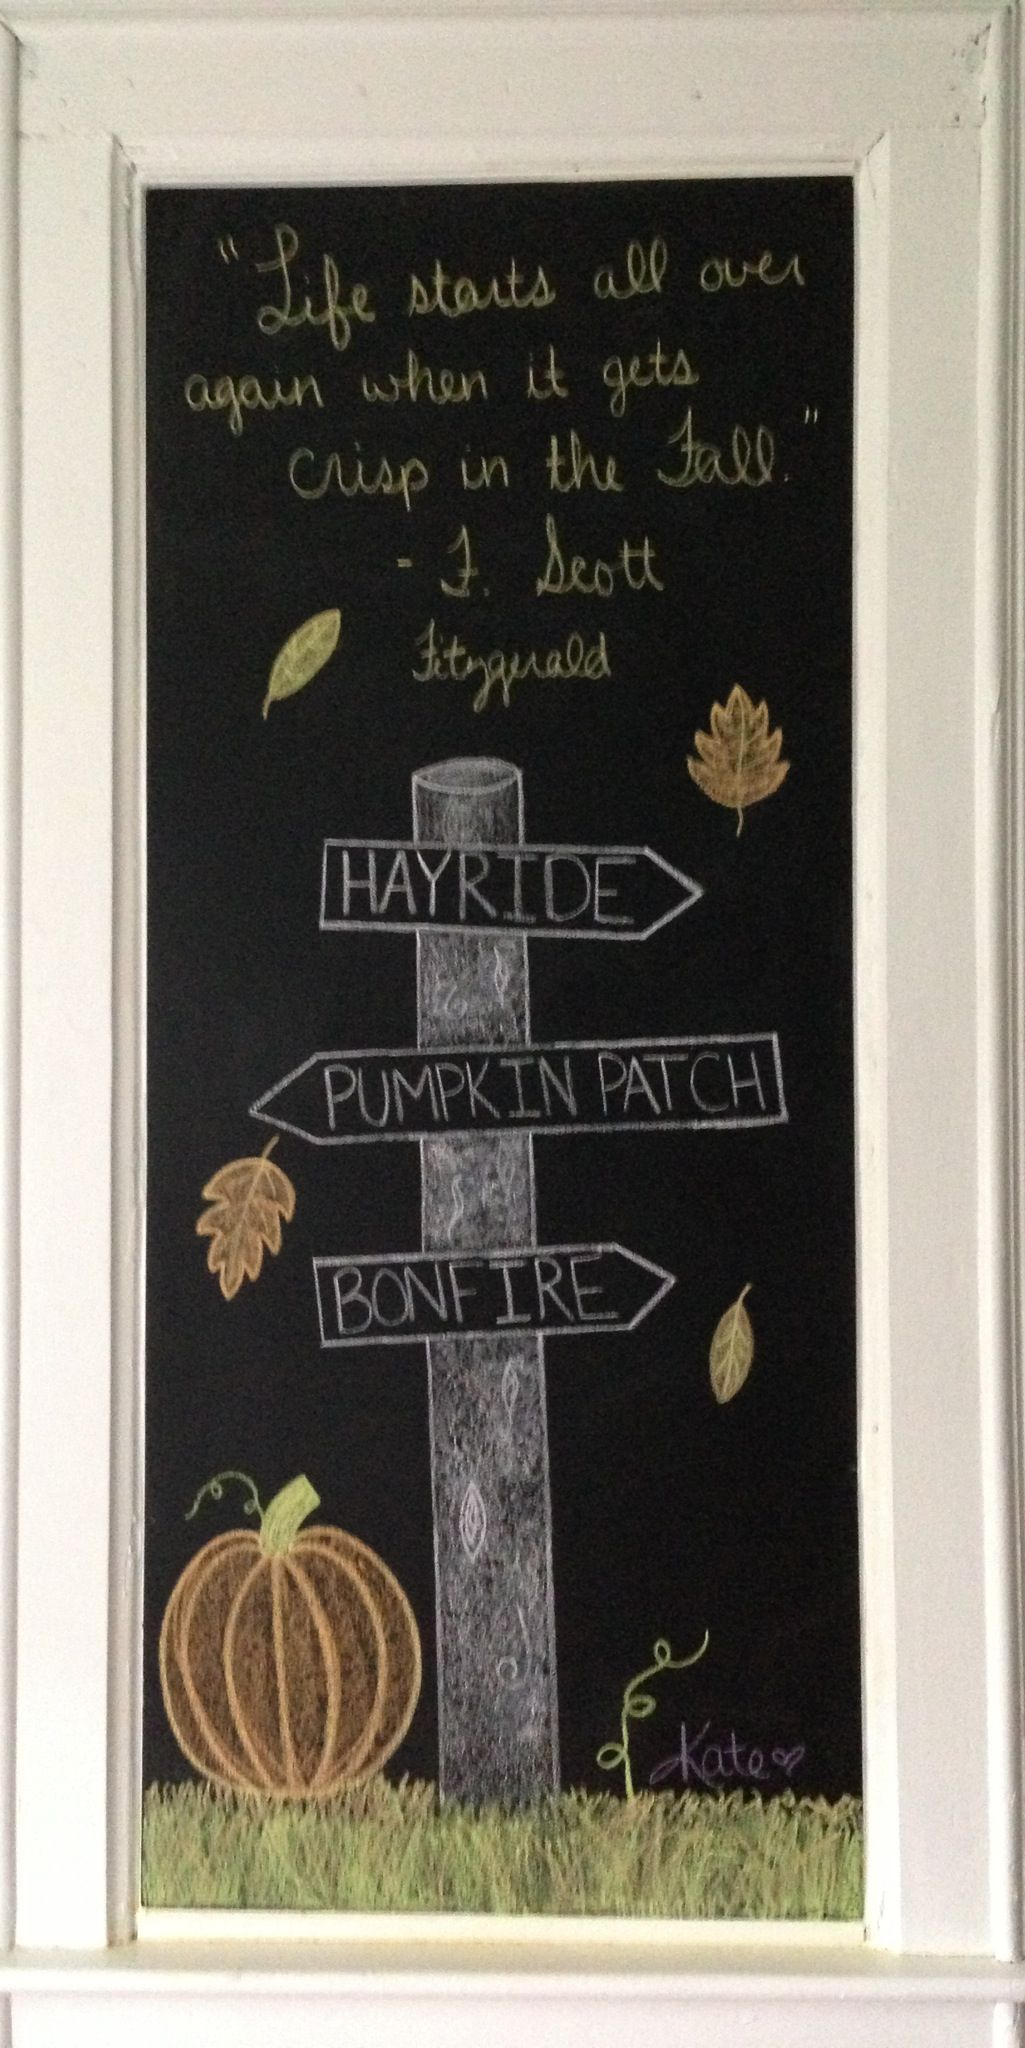 My September Chalkboard Art | Chalk board ART | Pinterest | Alte ...